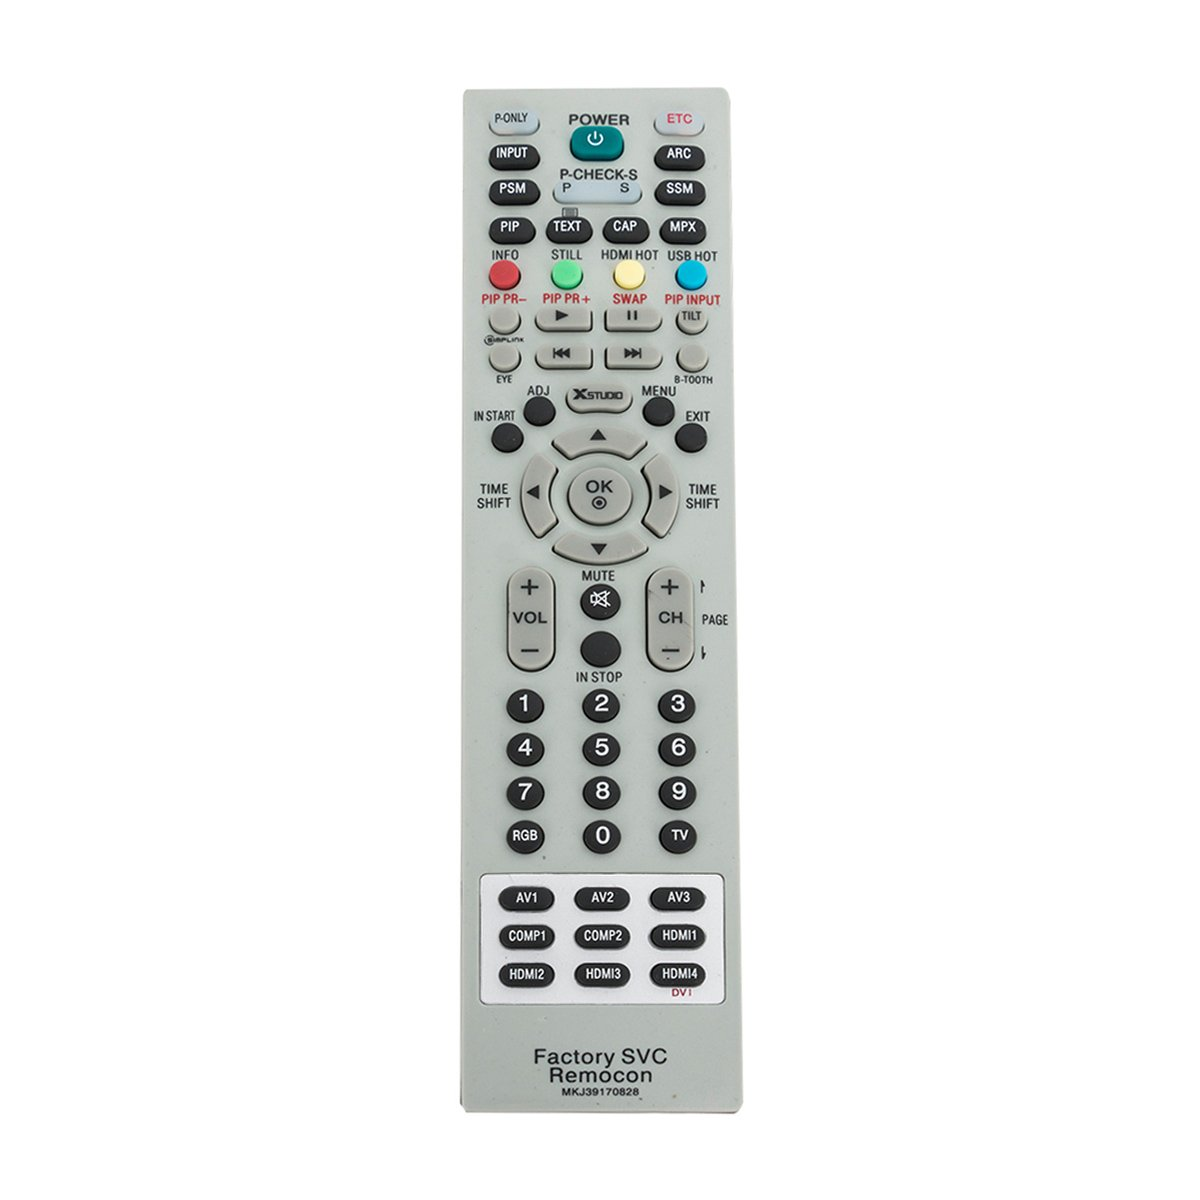 MKJ39170828 Replacement Service Remote Control fit for LG LCD LED TV